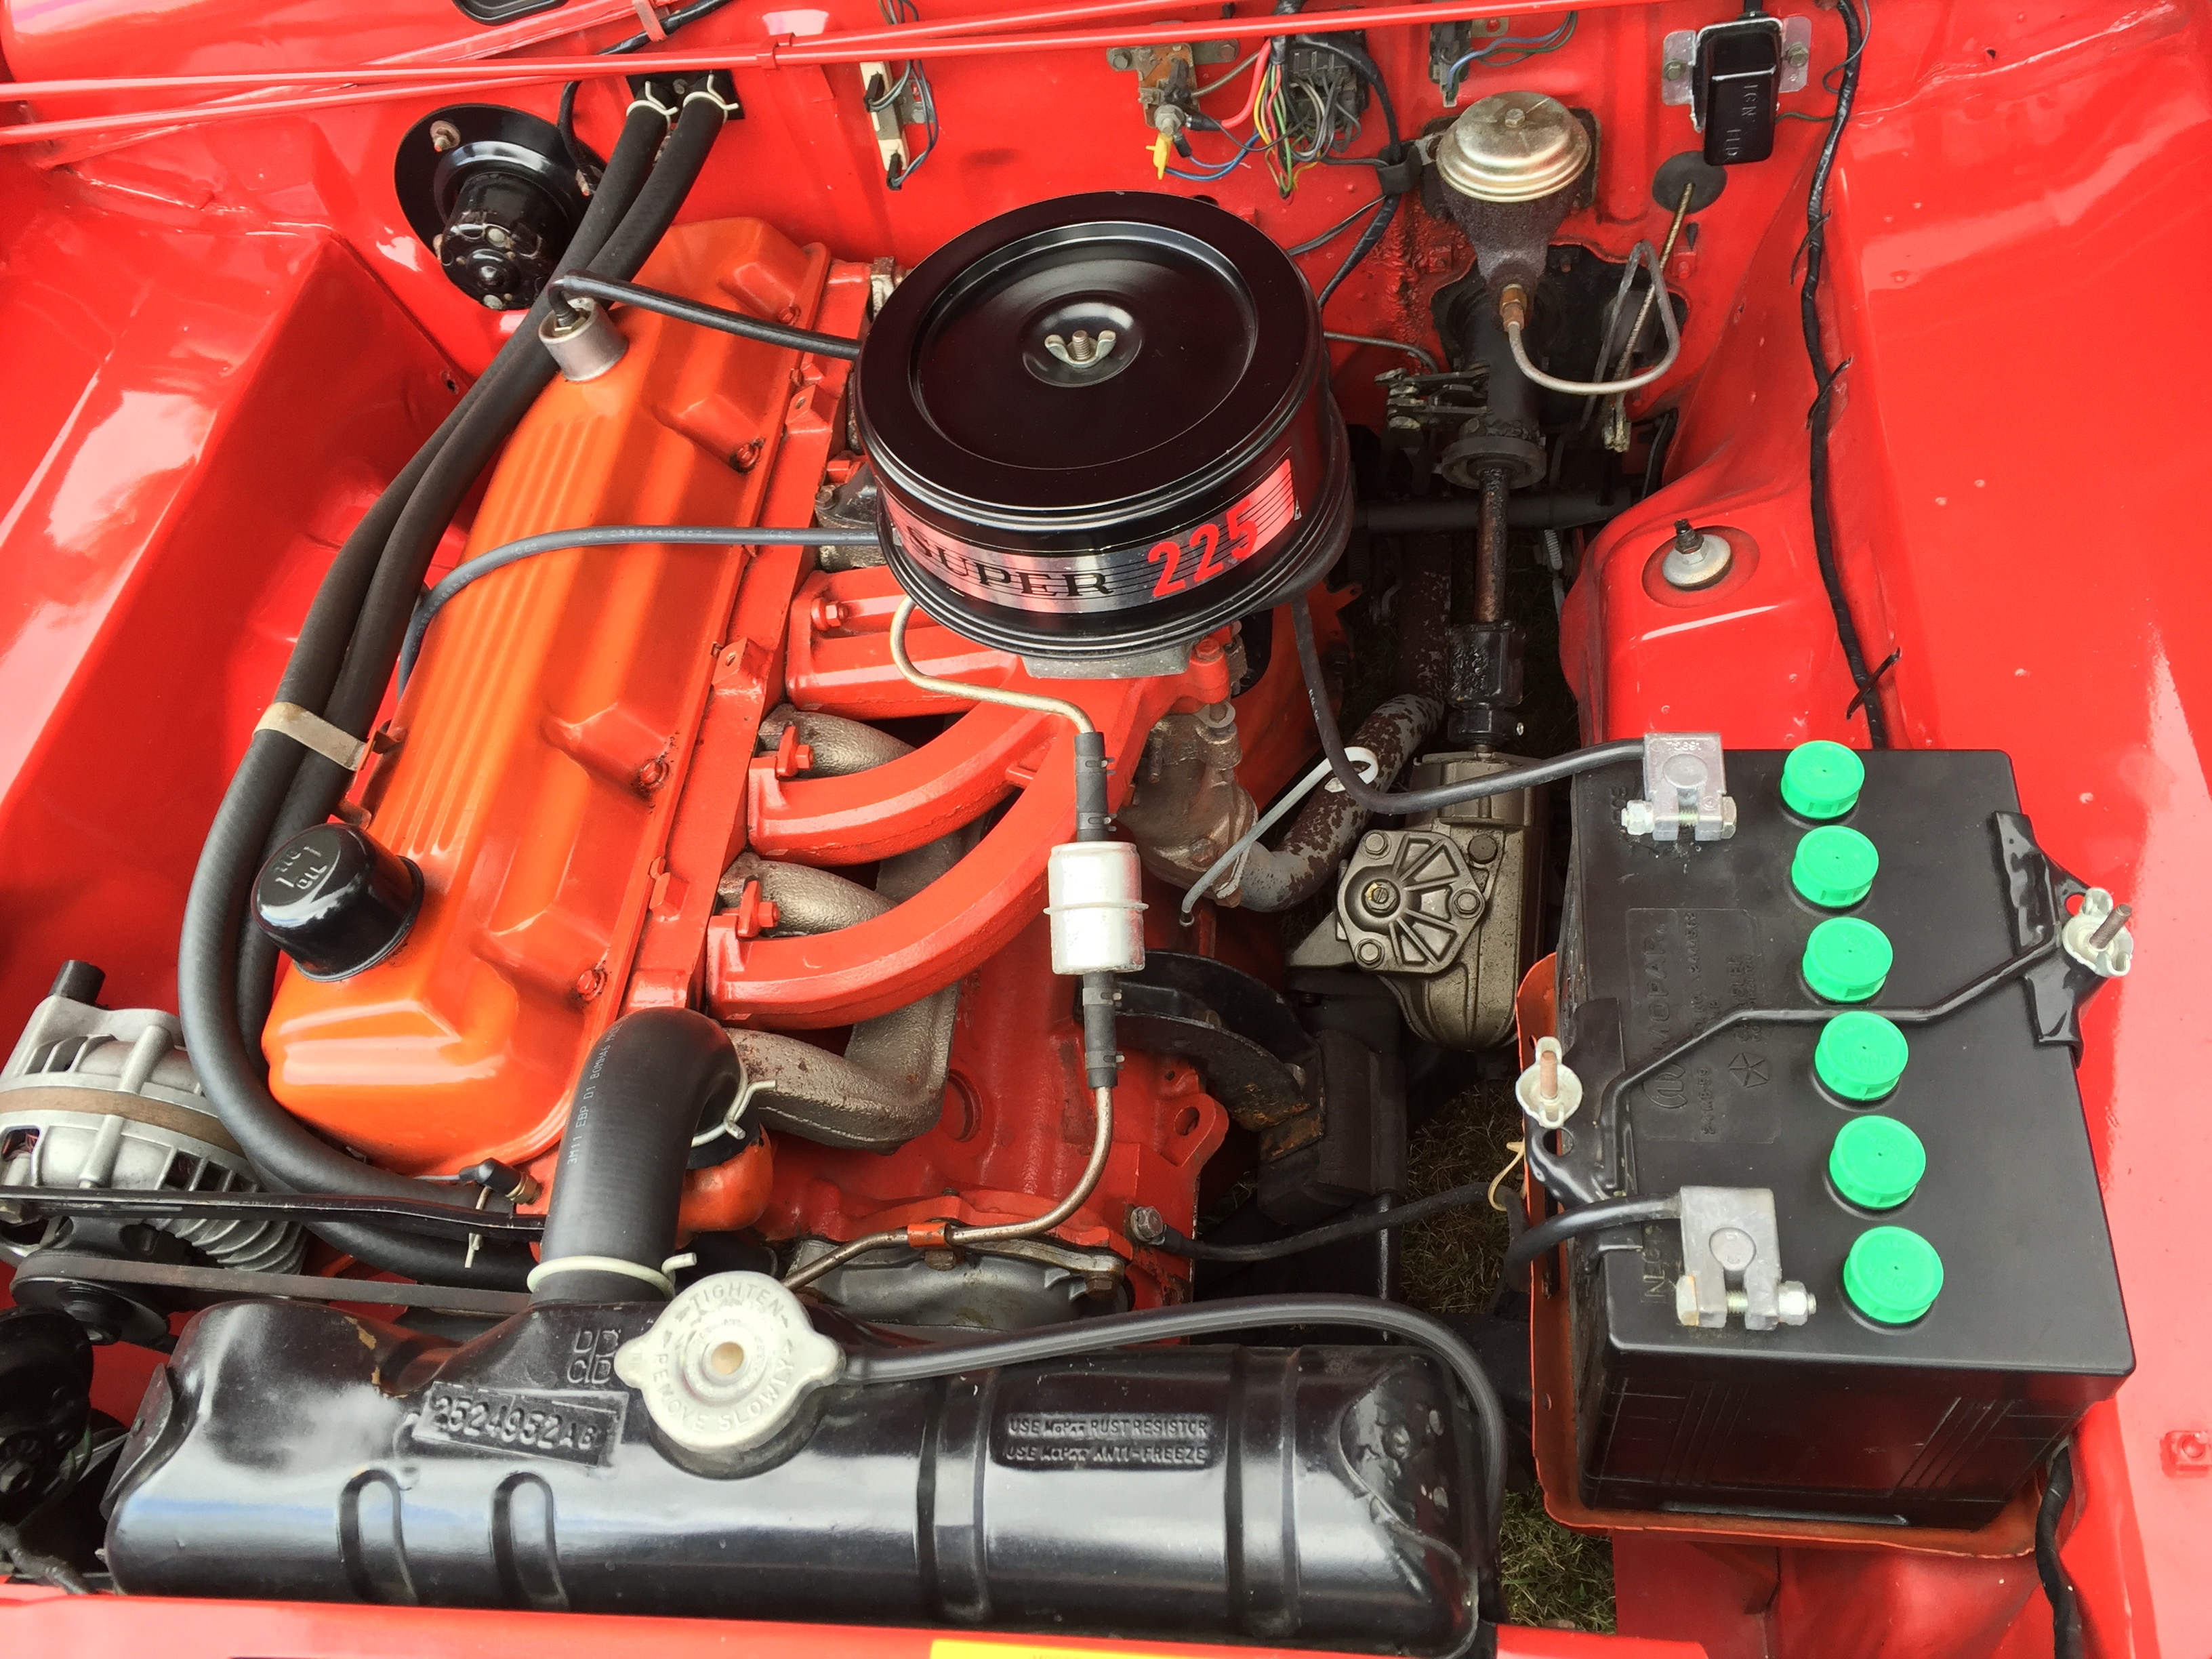 6 0 Engine Bay Diagram Guide And Troubleshooting Of Wiring Poerstroke Chrysler Slant Wikipedia Rh En Org 60 Powerstroke Turbo 64